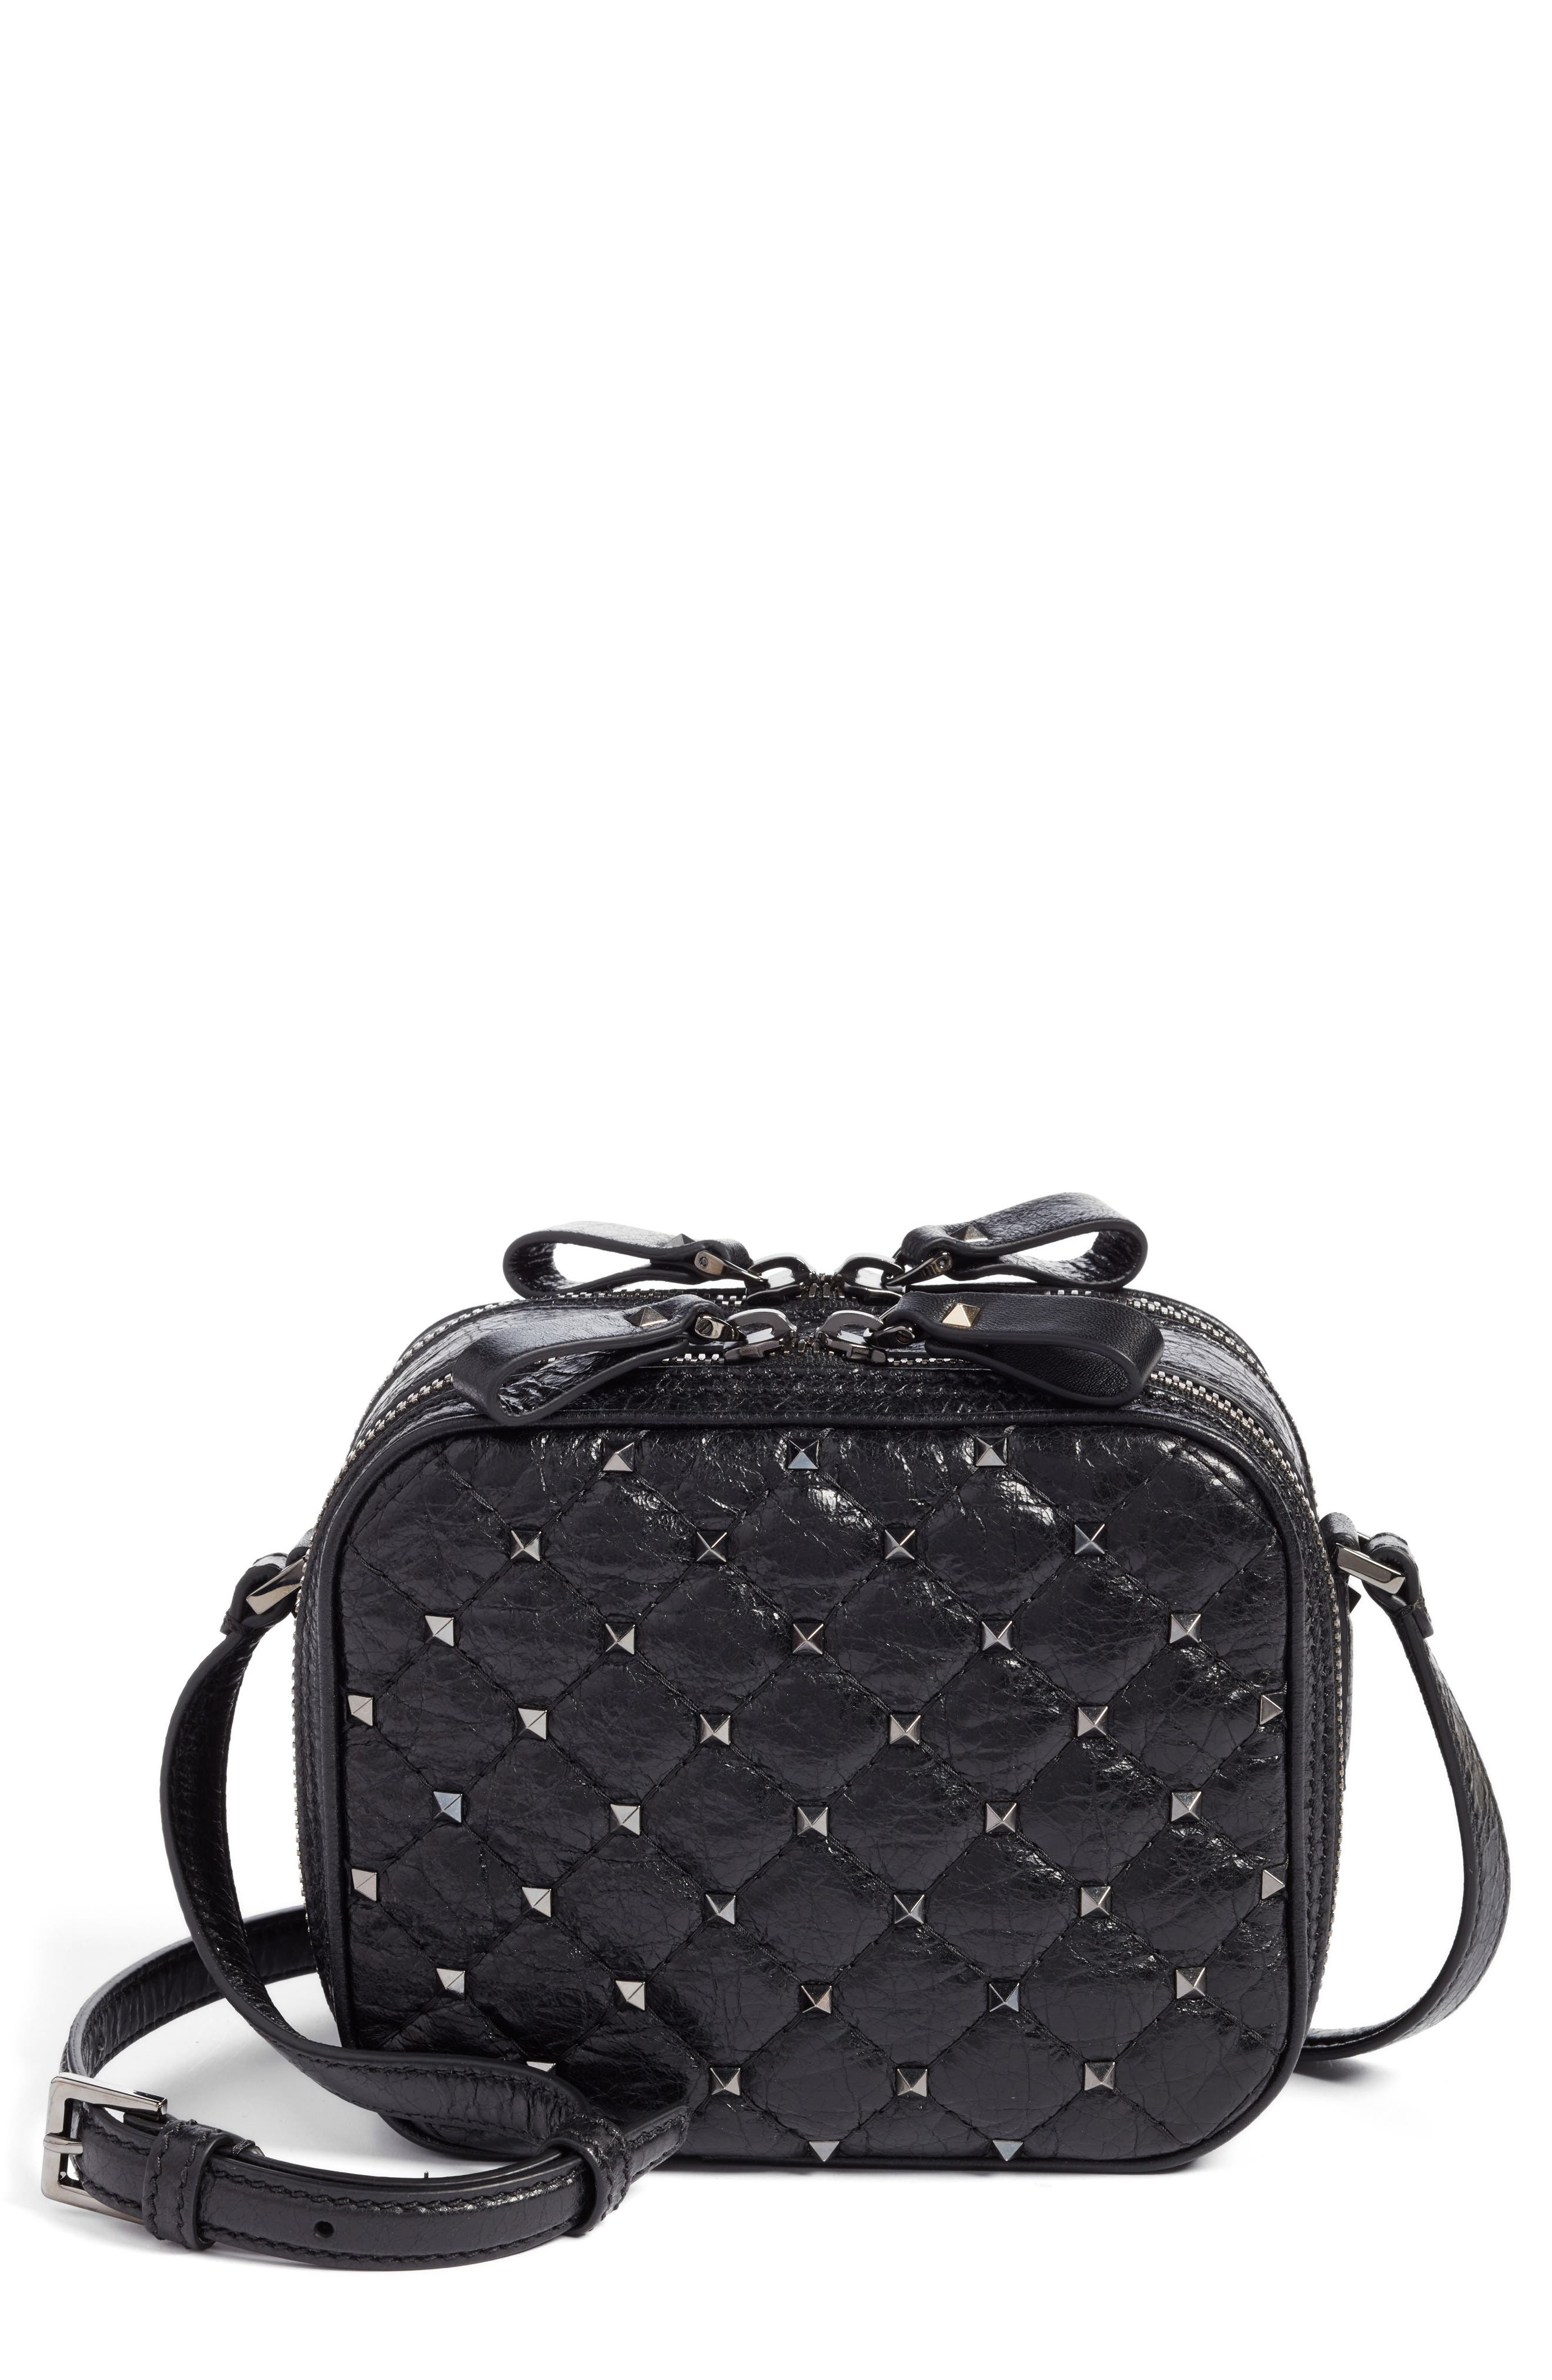 VALENTINO GARAVANI Rockstud Leather Camera Crossbody Bag